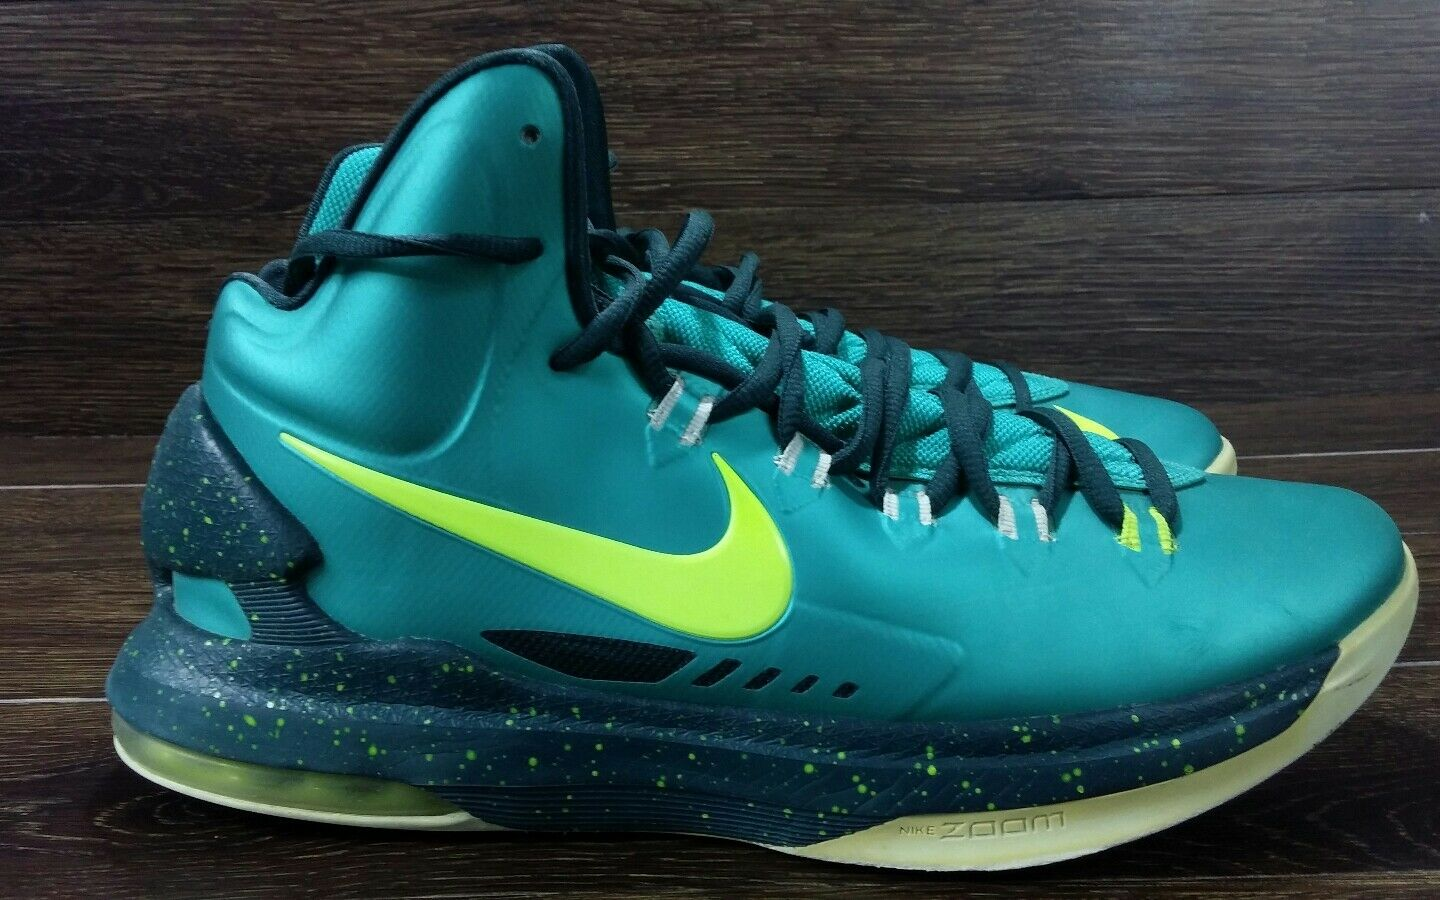 23ab93aa77b NIKE ZOOM KD DURANT BASKETBALL SHOES 554988-300 Green MEN'S SIZE 9.5 US  VGUC. NIKE AIR JORDAN ...